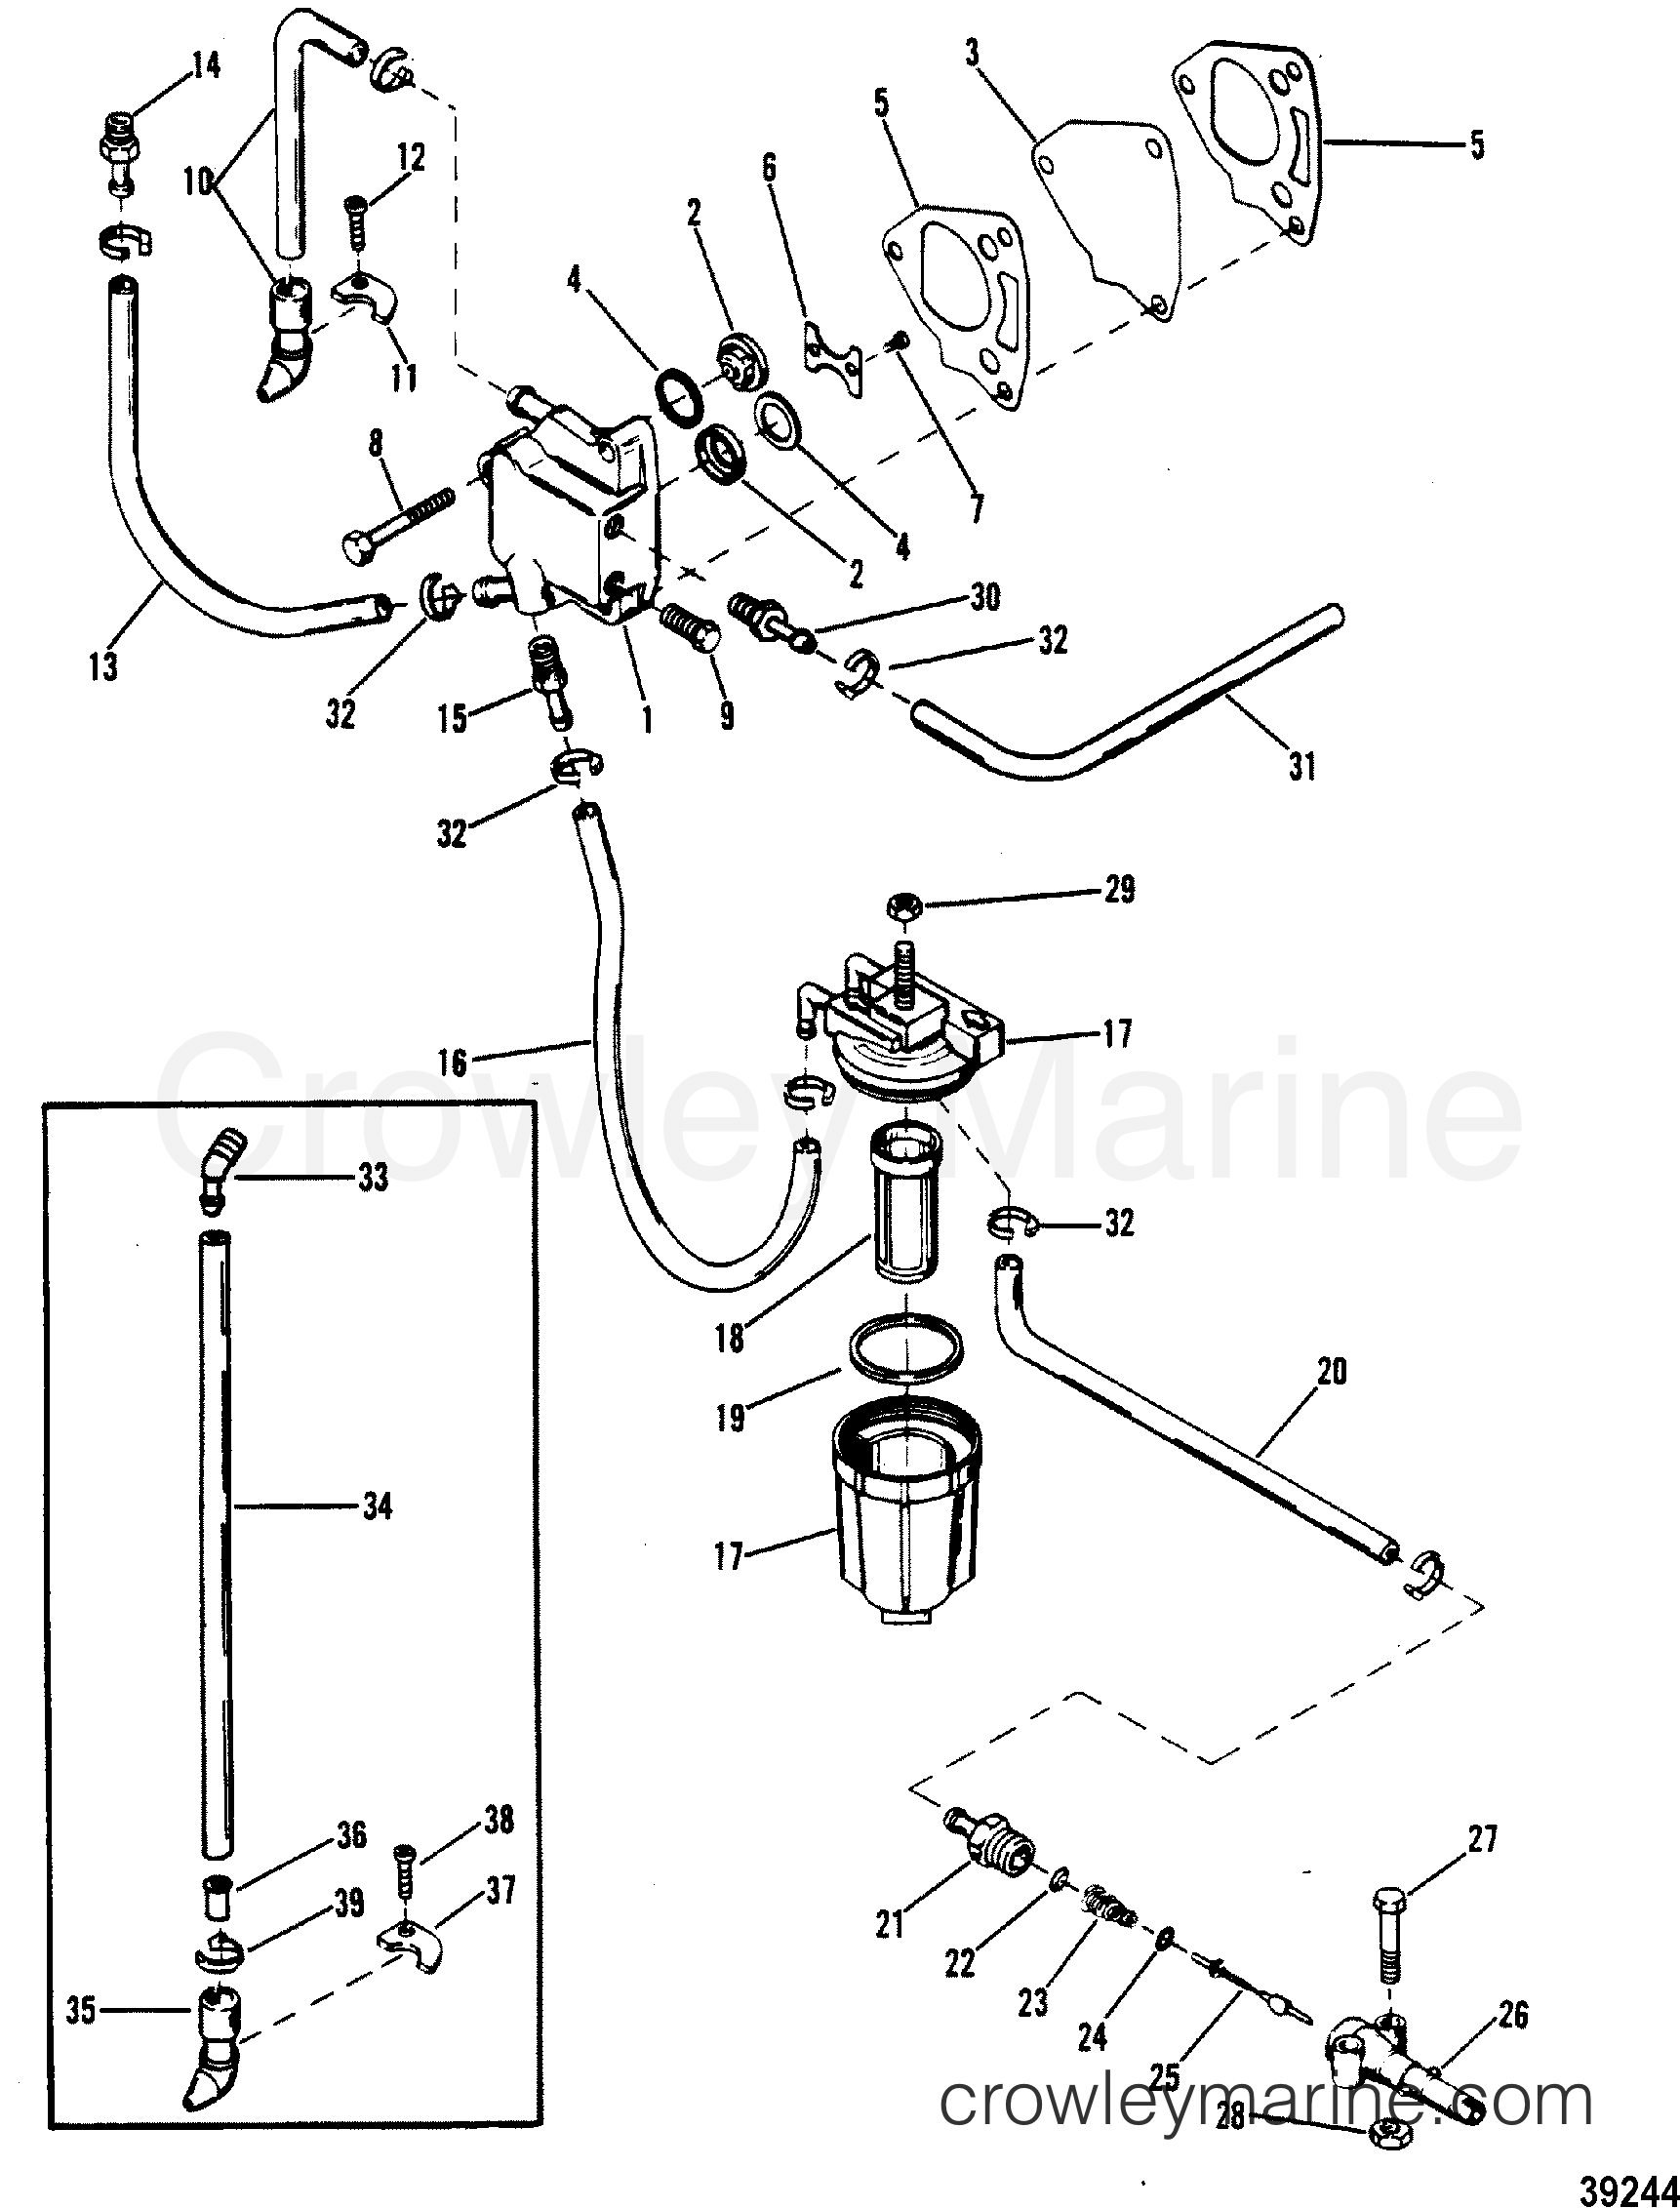 Fuel Pump And Fuel Line